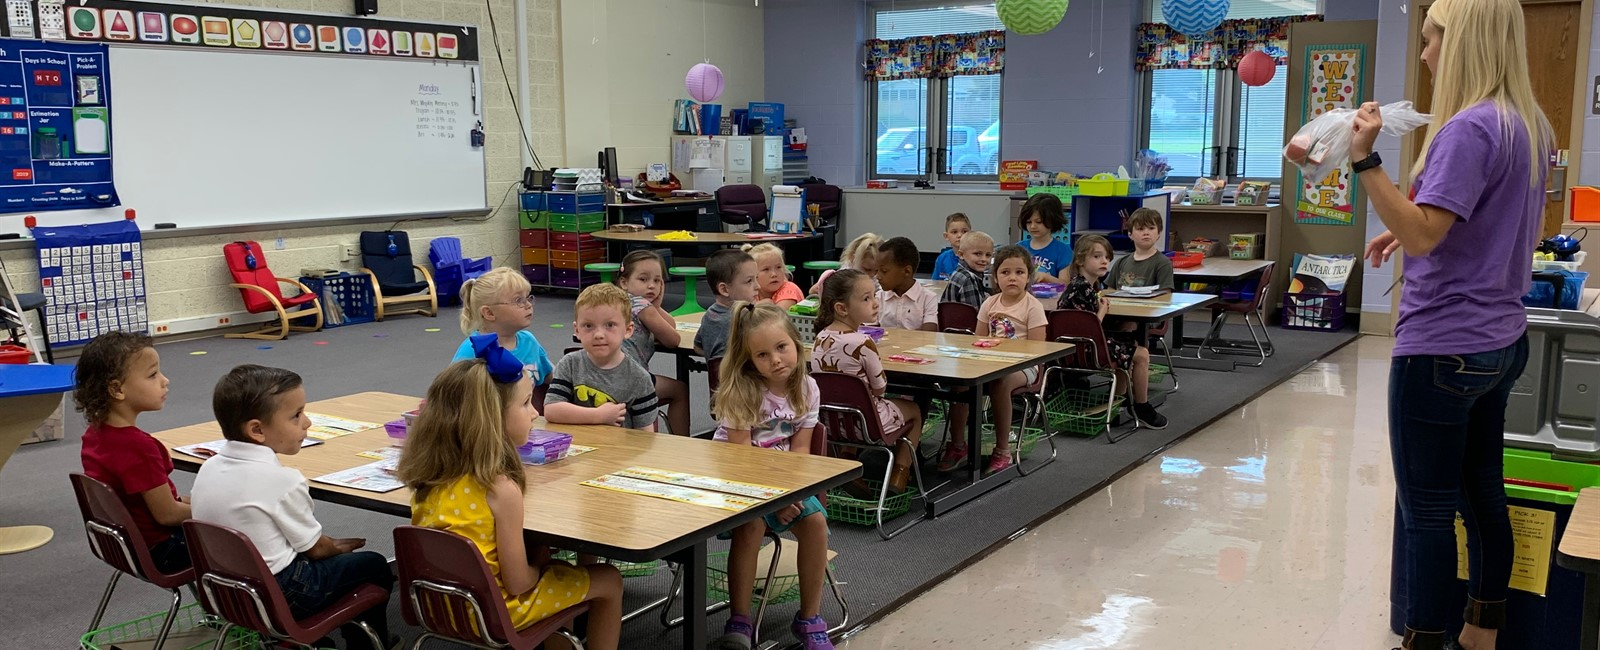 Our students are ready to learn and looking forward to the 2019-2020 school year!